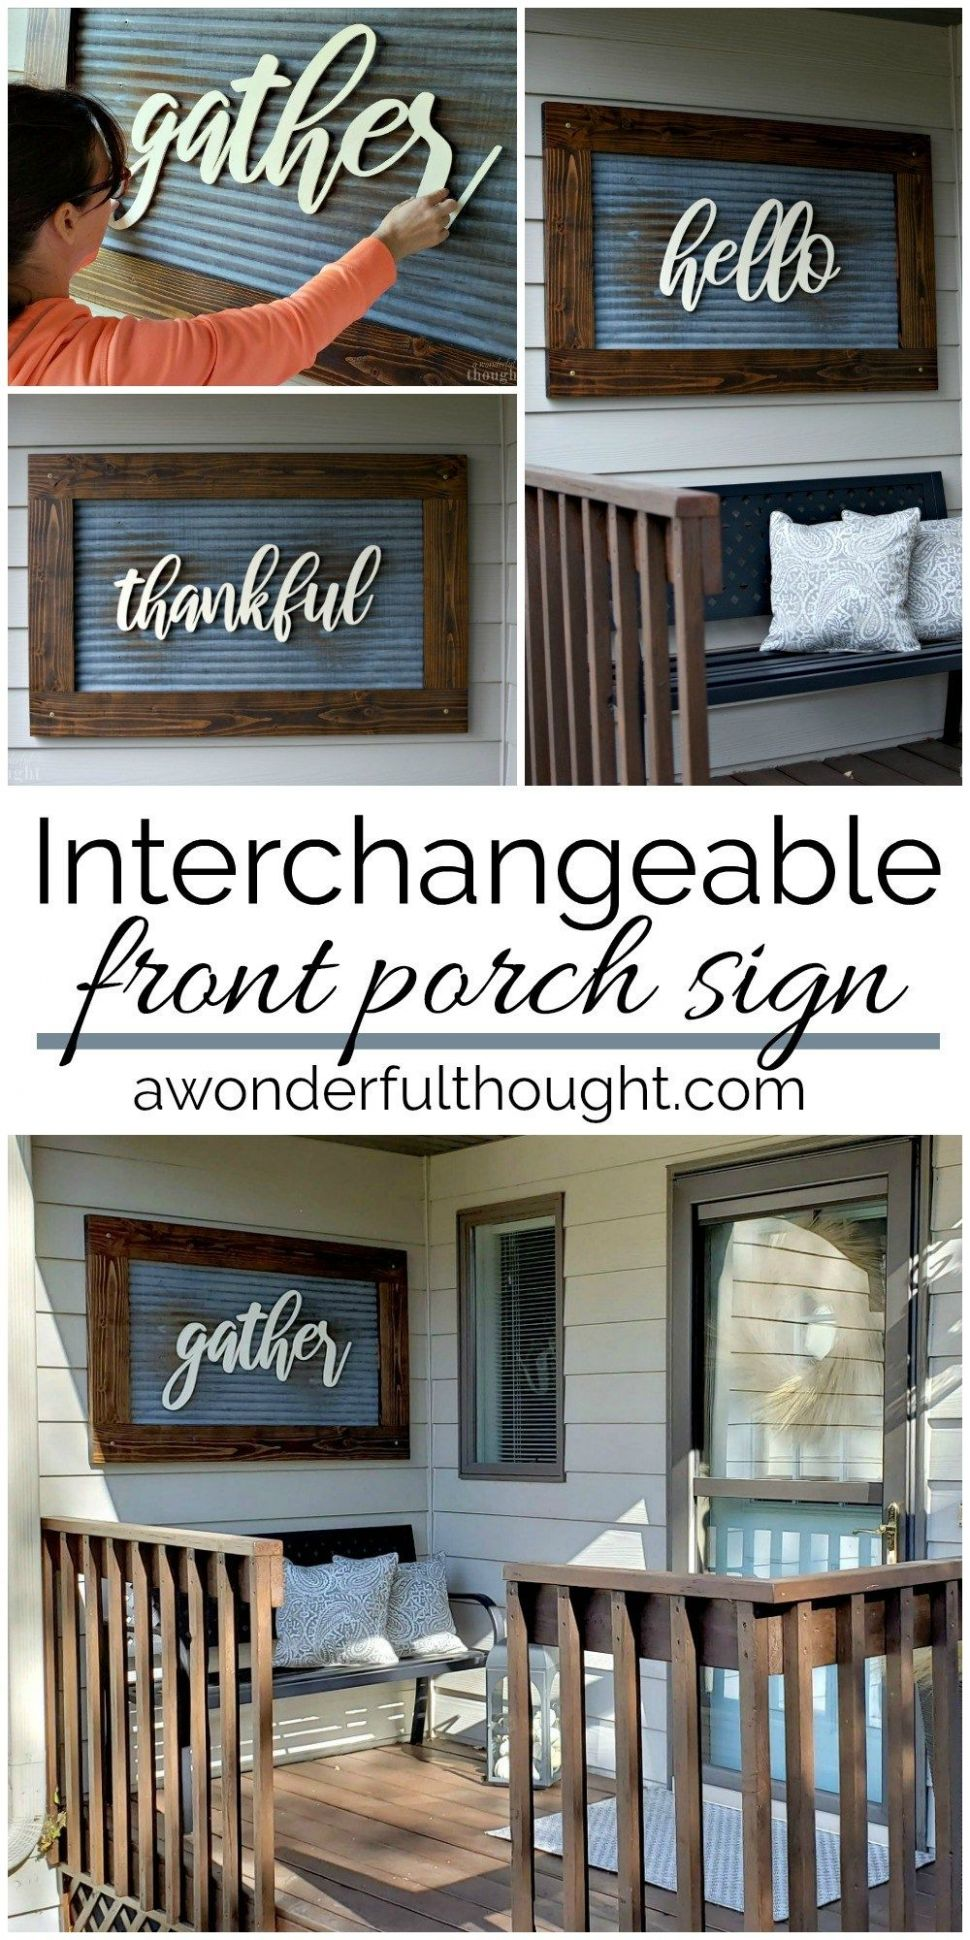 Interchangeable Front Porch Sign (With images) | Diy front porch ..